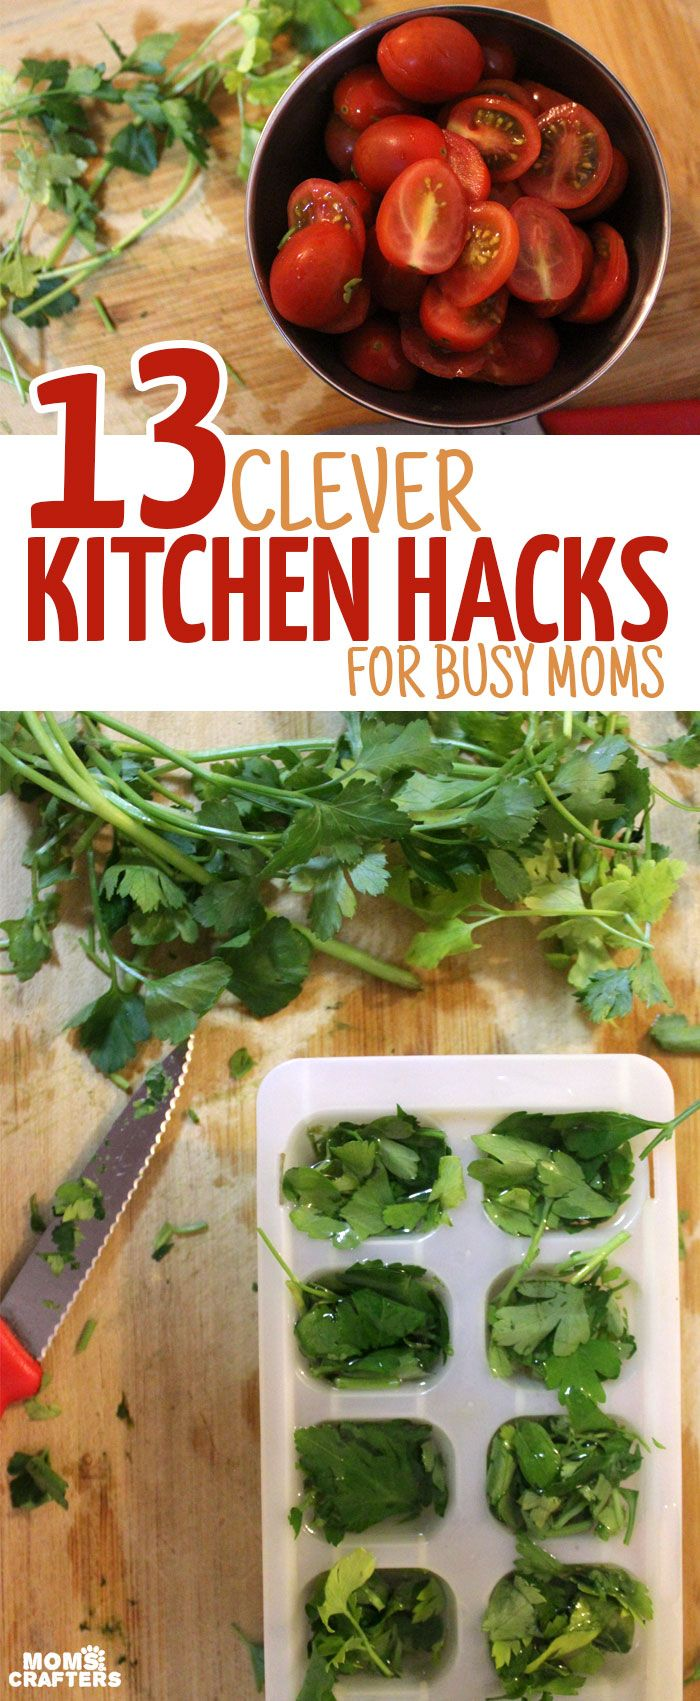 13 Clever Kitchen Hacks for Busy Moms - okay, you don't need to be a mom for all of these life tips to be relevant, but a lot will also really help in families with kids. These life hacks are so genius - it will make your cooking much easier! (sponsored)